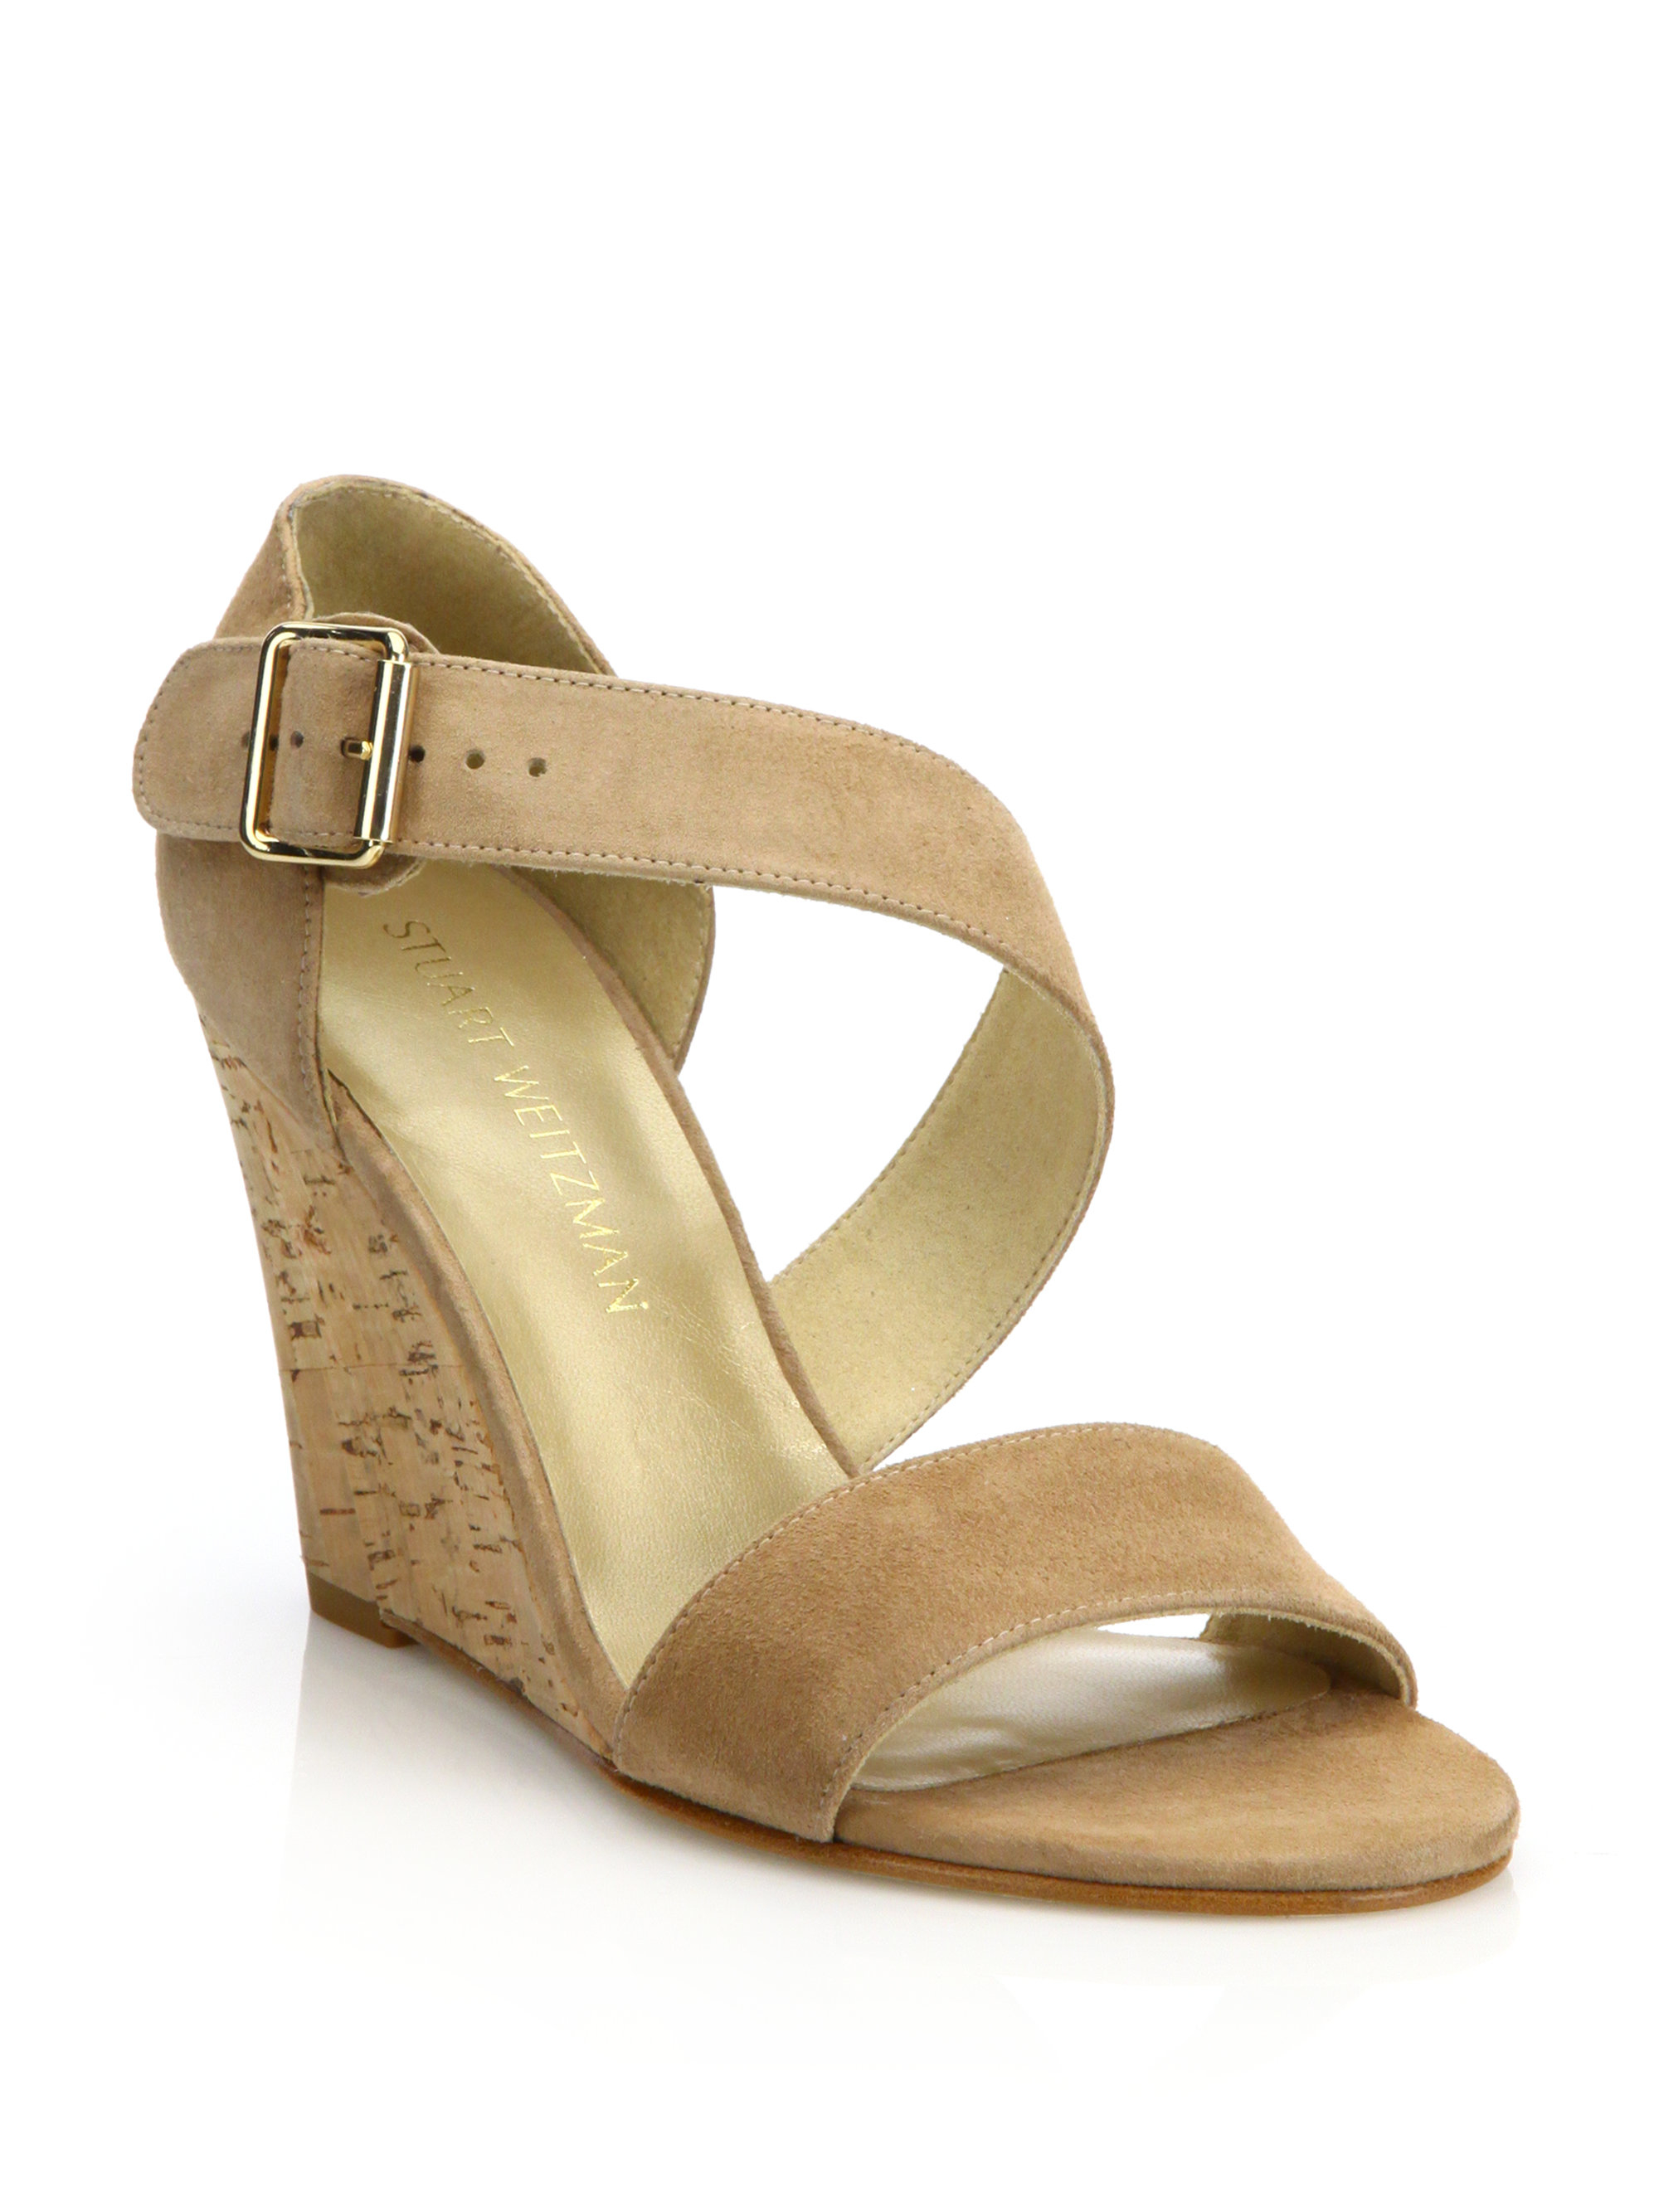 Lyst Stuart Weitzman Lineone Suede Cork Wedge Sandals In